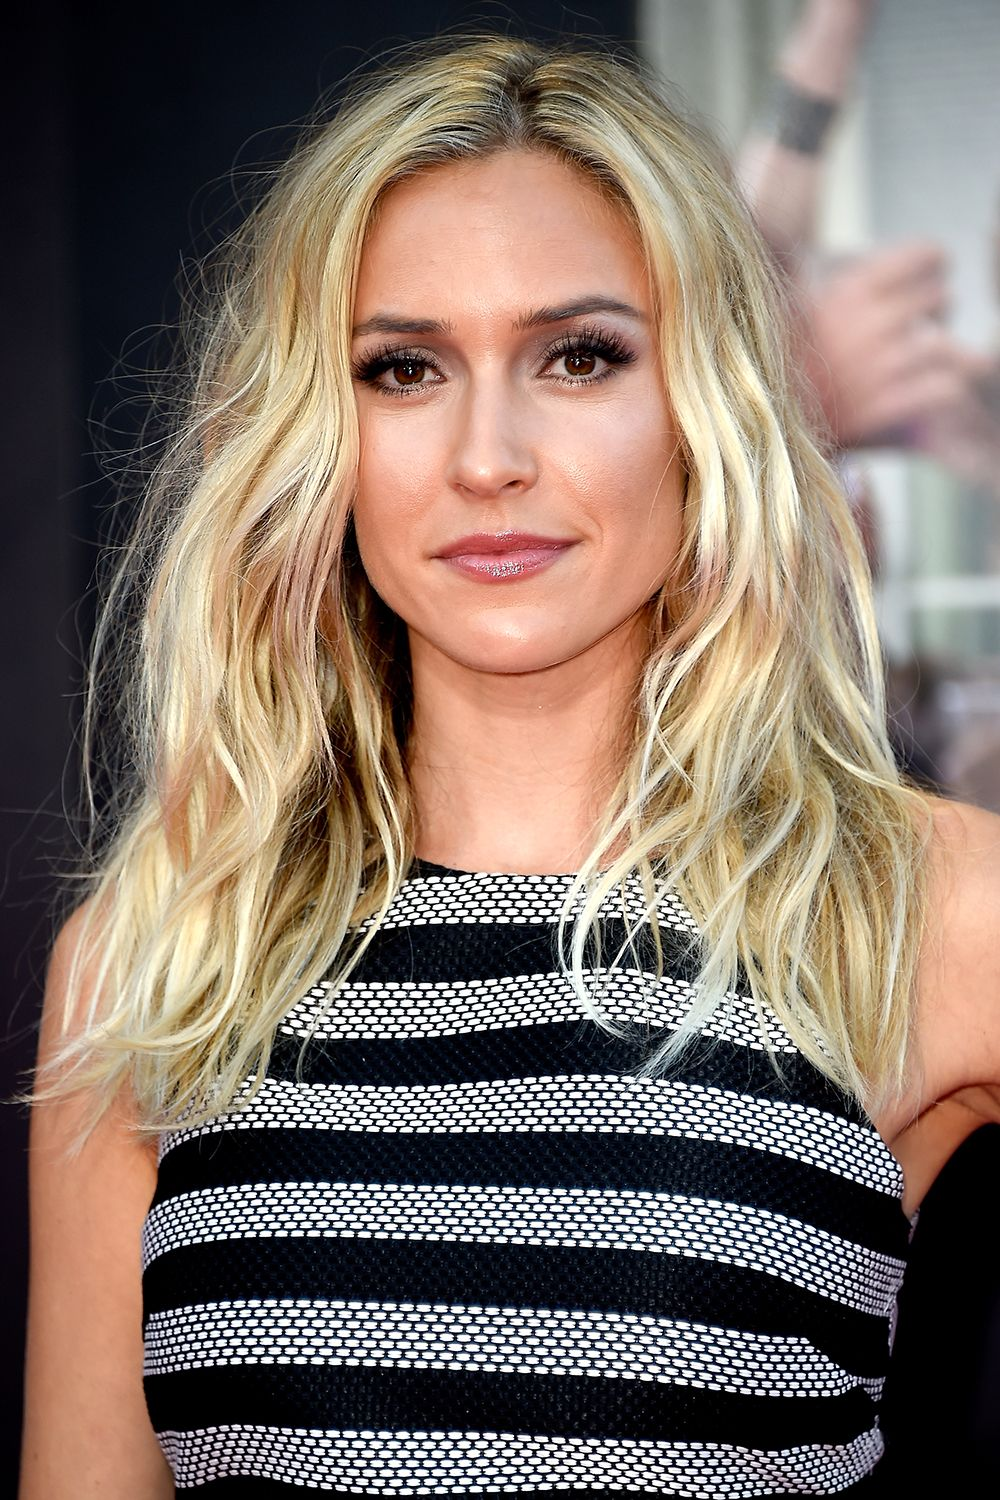 """Kristin Cavallari """"My goal is to never get botox or any other filler or injectable, for that matter,"""" she writes in her book Balancing in Heels: My Journey to Health, Happiness, and Making It All Wor k. """" I don't hate on people who get botox; I would just prefer to do everything a more natural way. We don't know the long-term effects of that stuff, and it doesn't seem right to me. We are supposed to age—that's part of life!"""""""